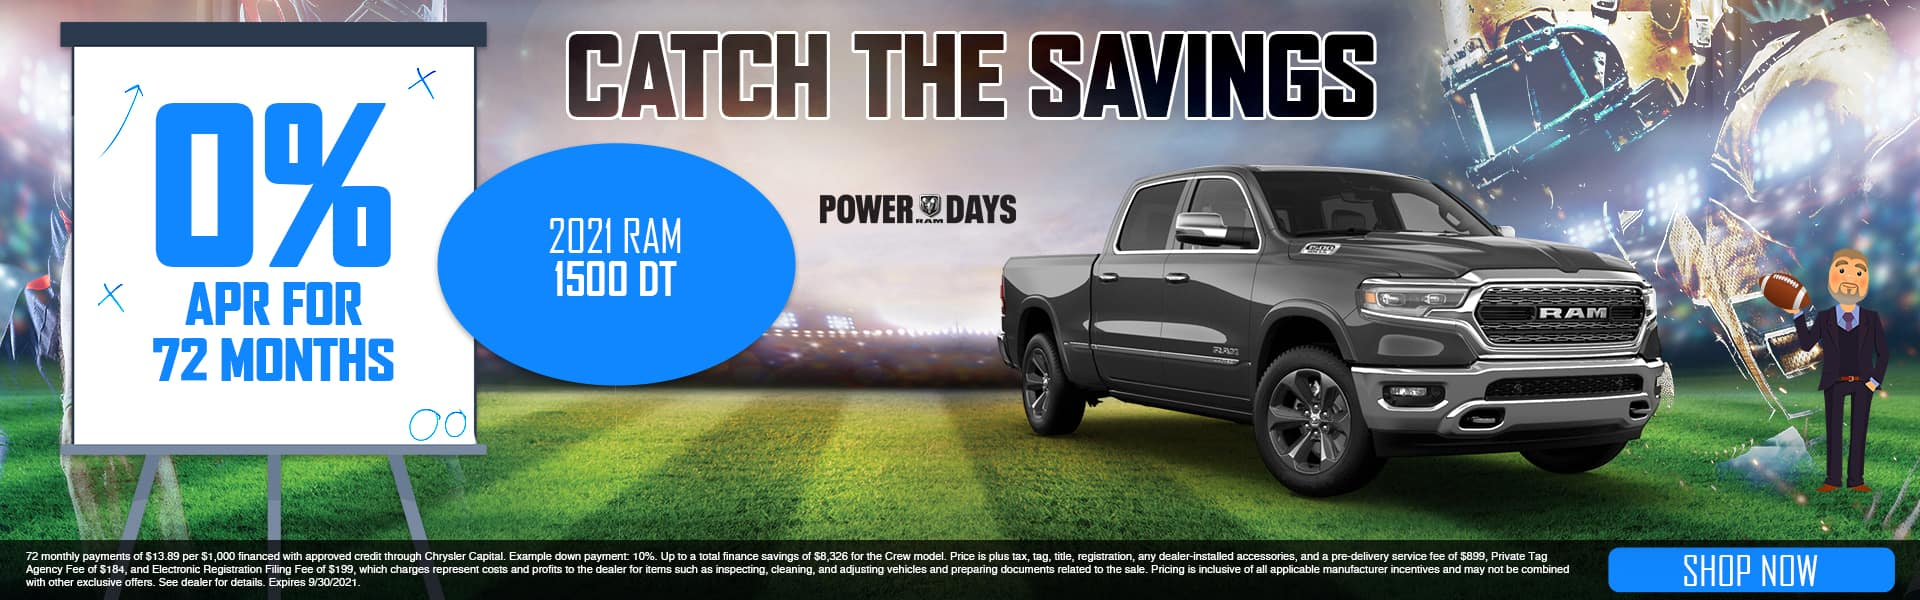 Catch The Savings | 2021 Ram 1500 DT | 0% APR For 72 Months